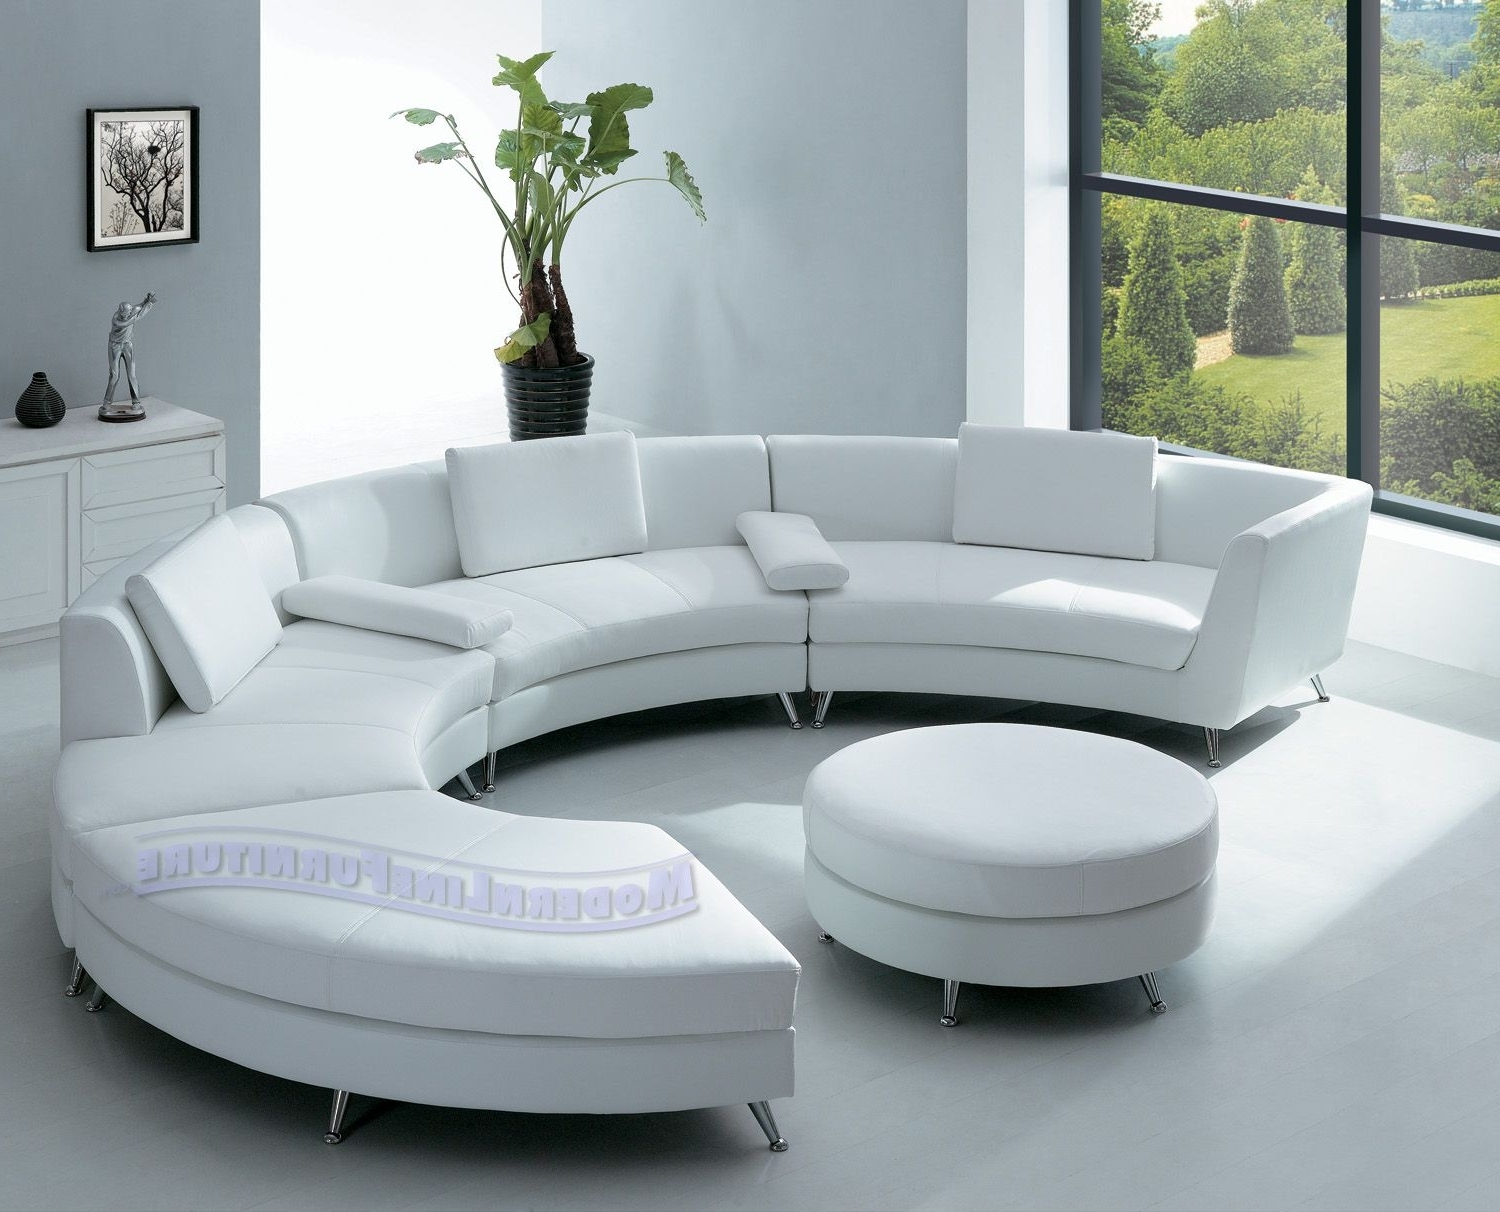 Favorite Room Furniture With Elegant Half Circle Sofa Home Interior Designs With Regard To Contemporary Sofa Chairs (View 12 of 20)